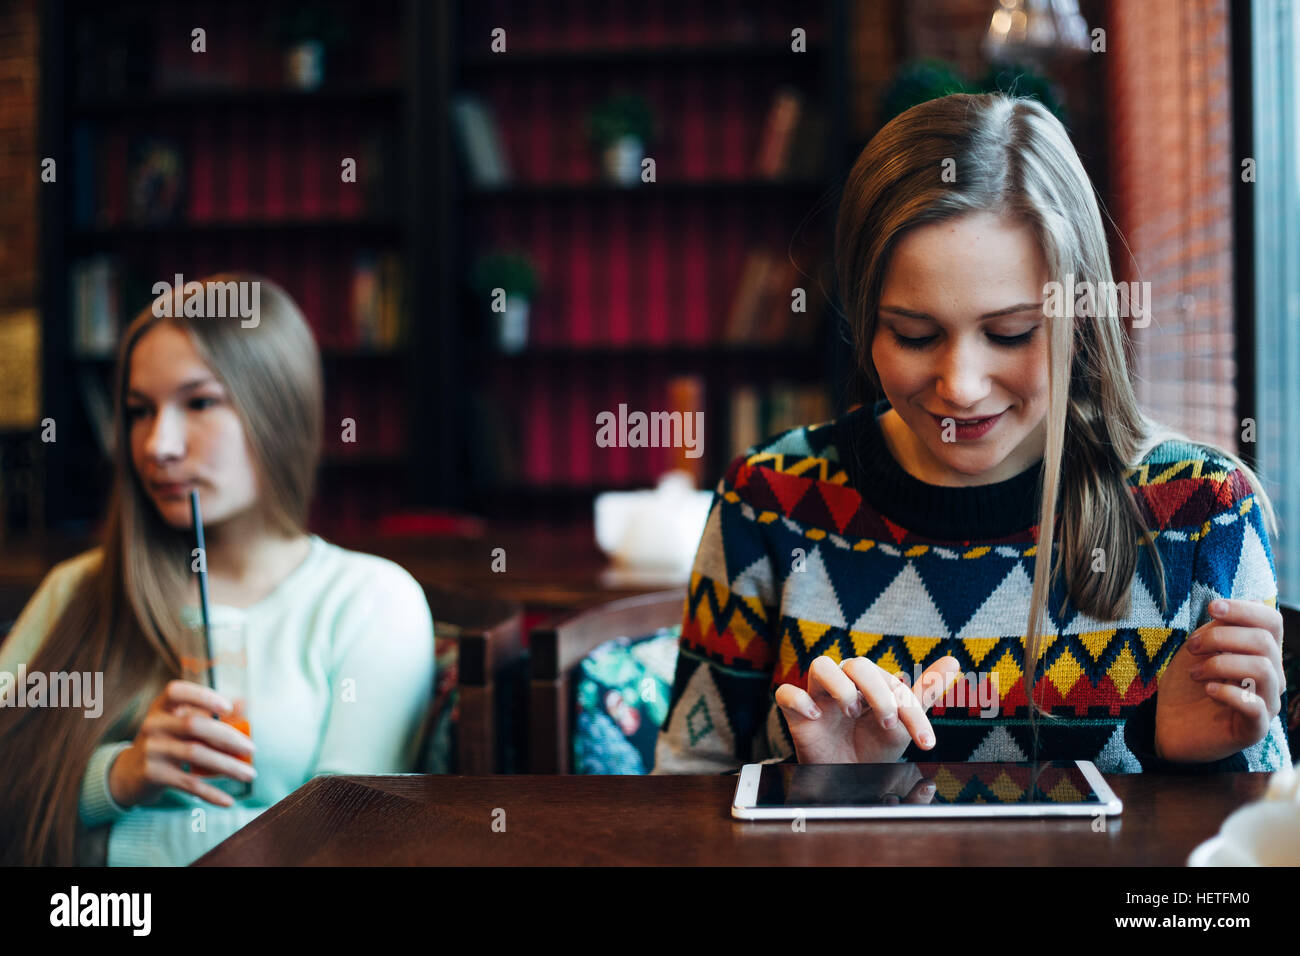 Girl friends communicate in a cafe - Stock Image